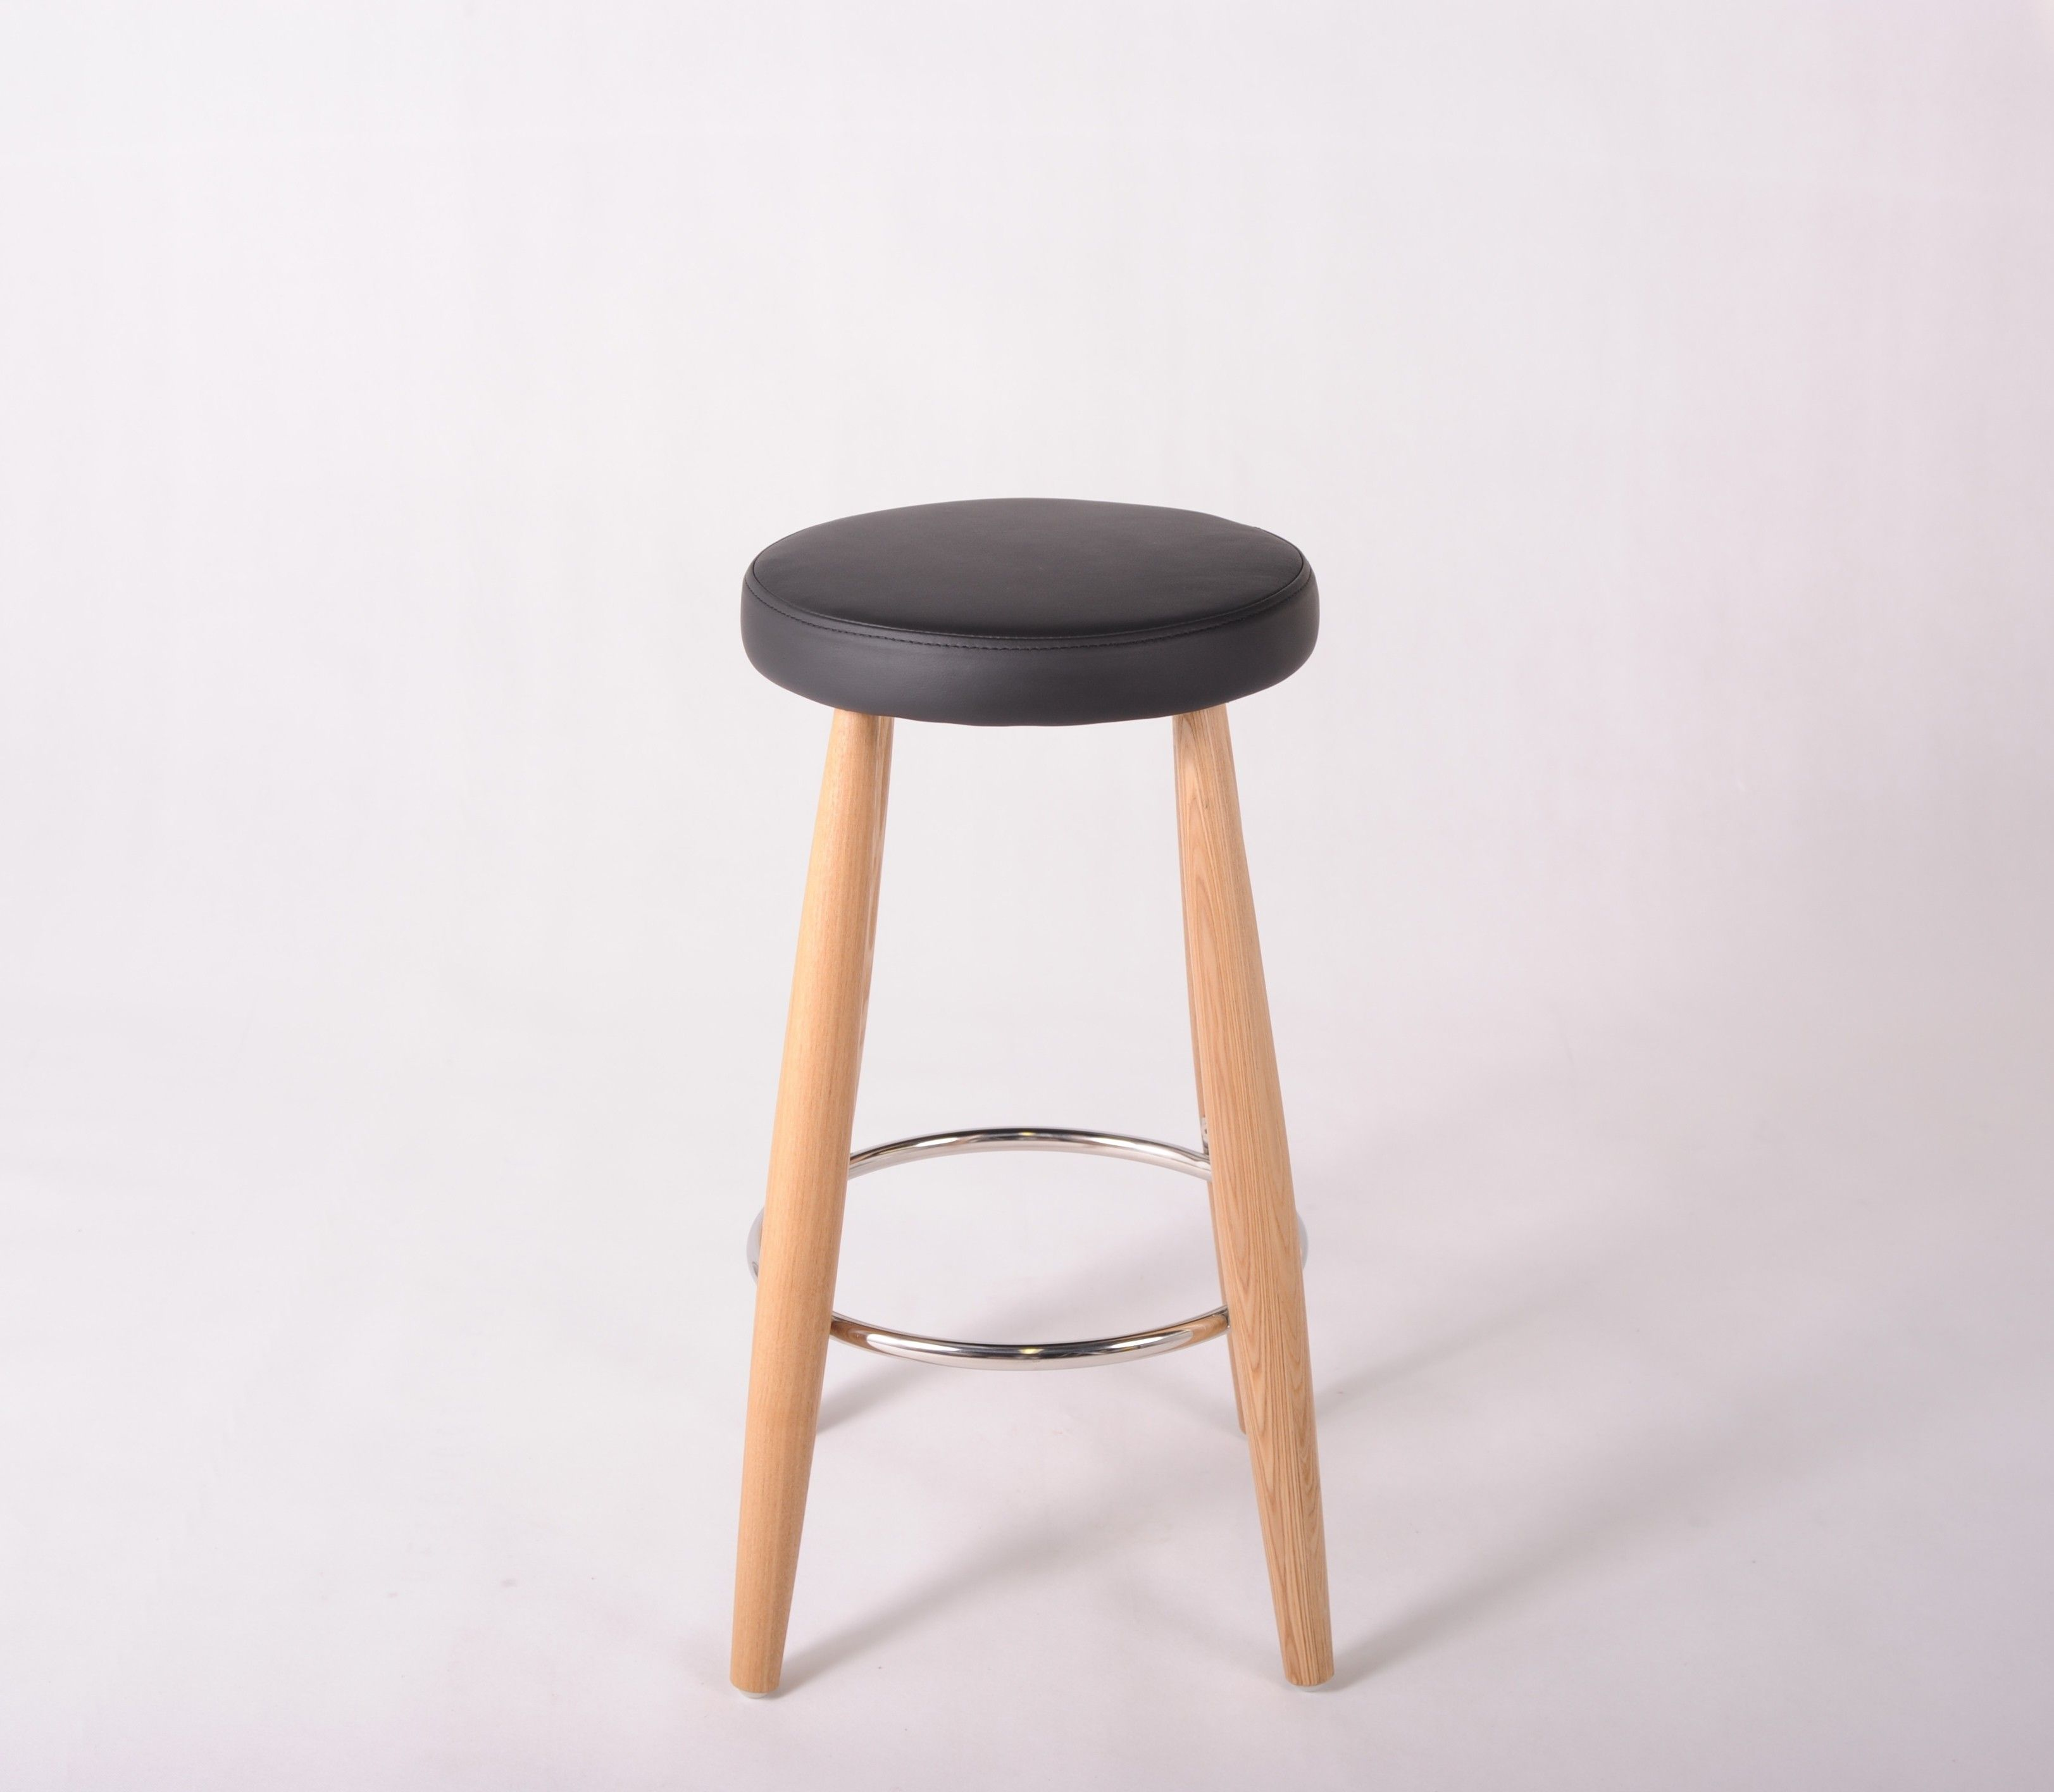 Wegner+Style+CH56+Barstool+(Multiple+Colors/Materials)+|+Designer+Reproduction